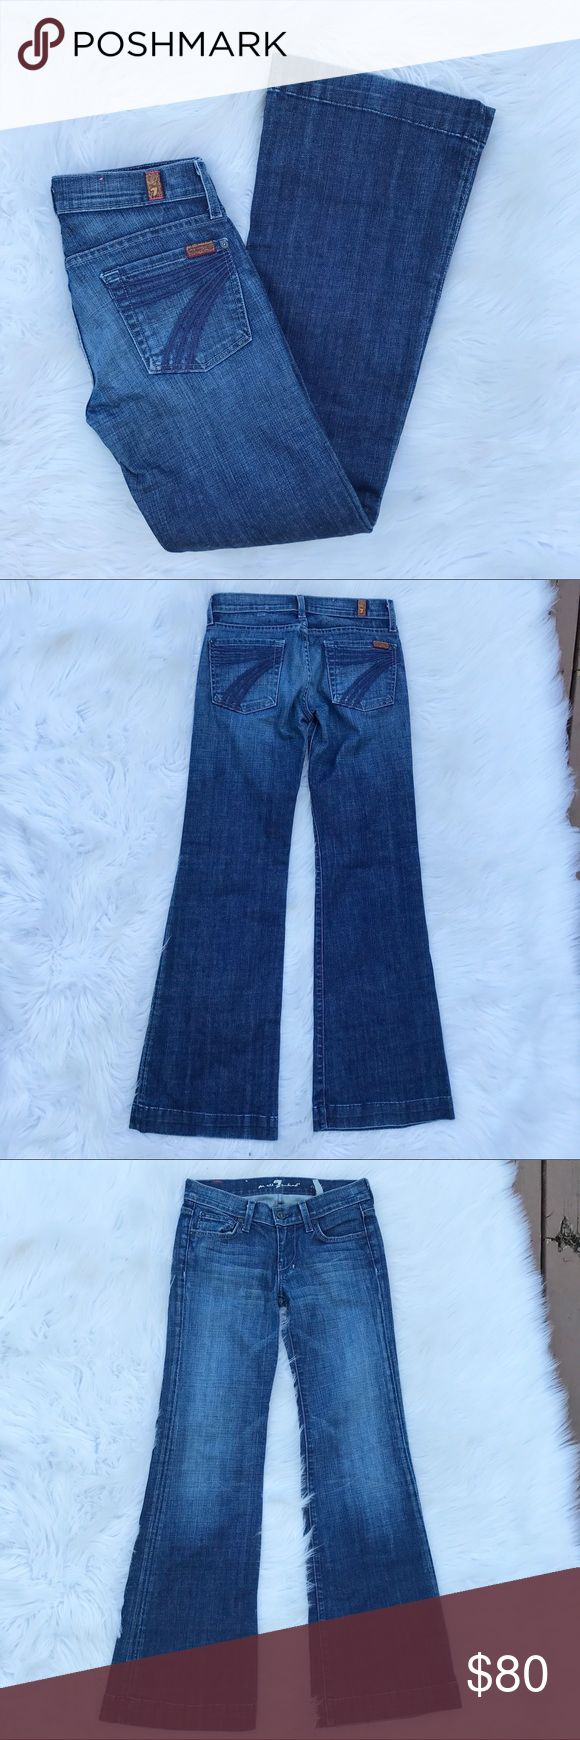 """7FAMK DOJO Lexi Petite Tailorless Dojo jeans by 7FAMK, Lexie Petite. In excellent used condition. Medium/ dark wash. Very very little wear to bottom edges. 98% cotton, 2% spandex. Inseam - 30"""", rise - 7"""", bottom leg opening - 10"""", waist - 14.5"""". No trades, offers welcome. Cover photo most accurately shows color. 7 For All Mankind Jeans Flare & Wide Leg"""